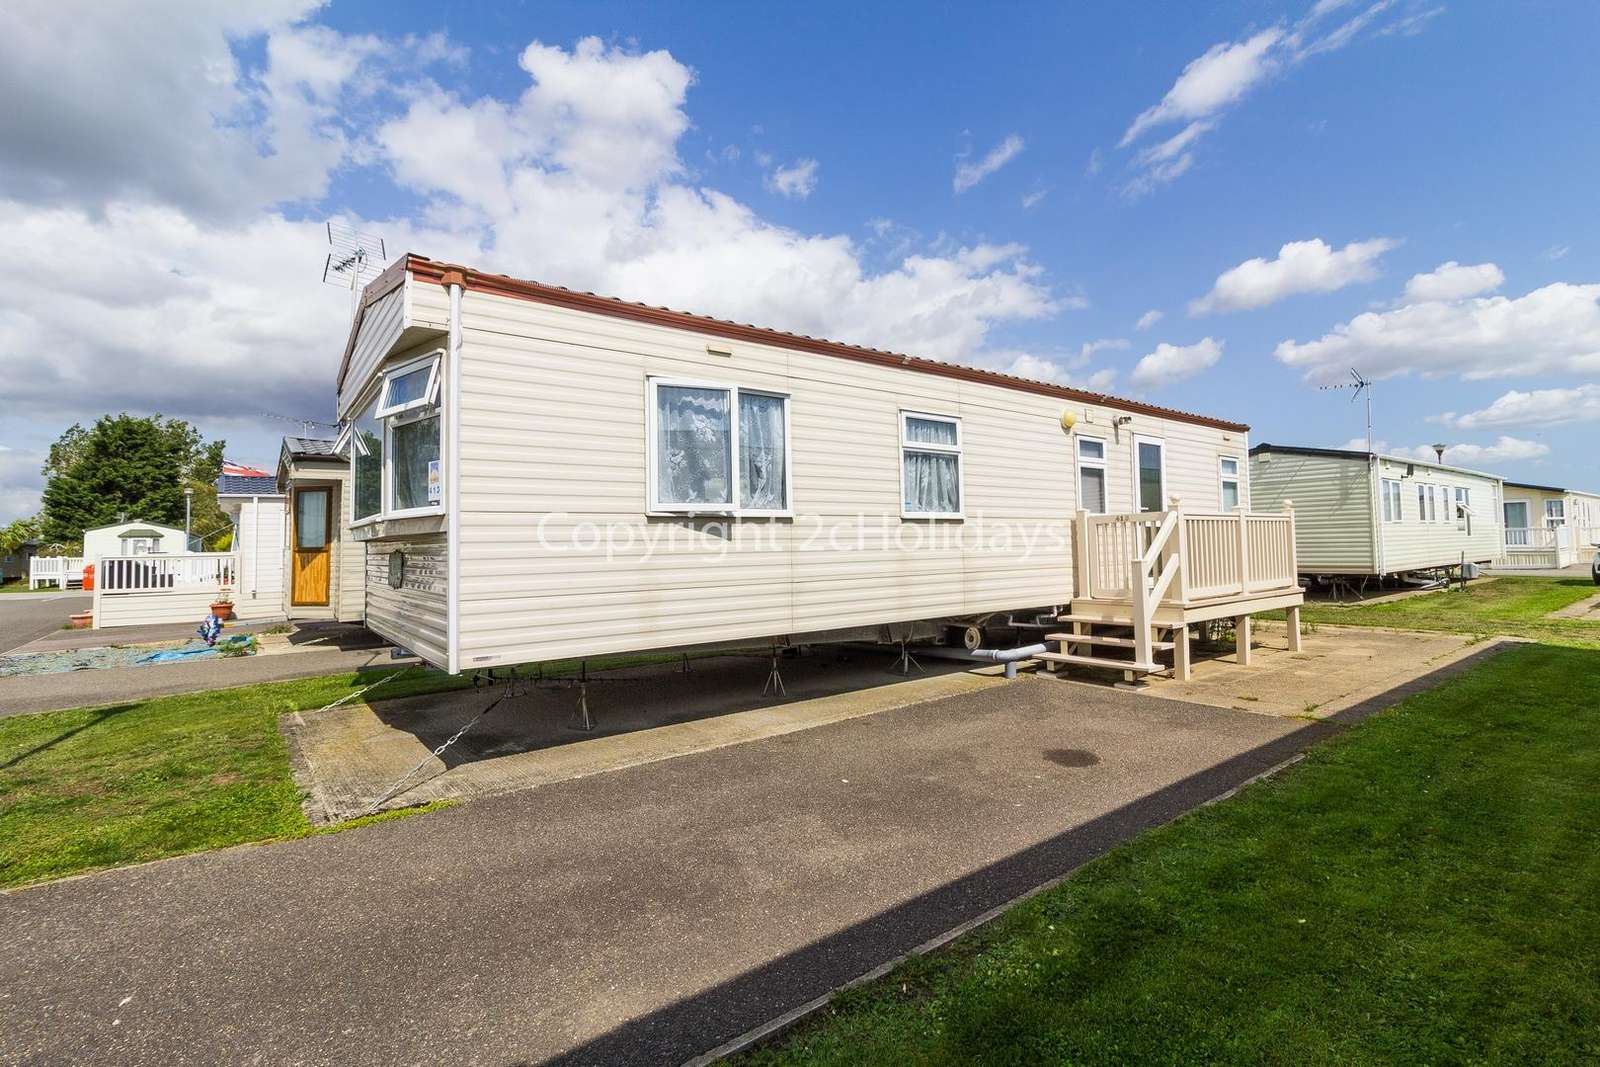 Great caravan close to the lovely seaside town of Clacton-on-Sea.